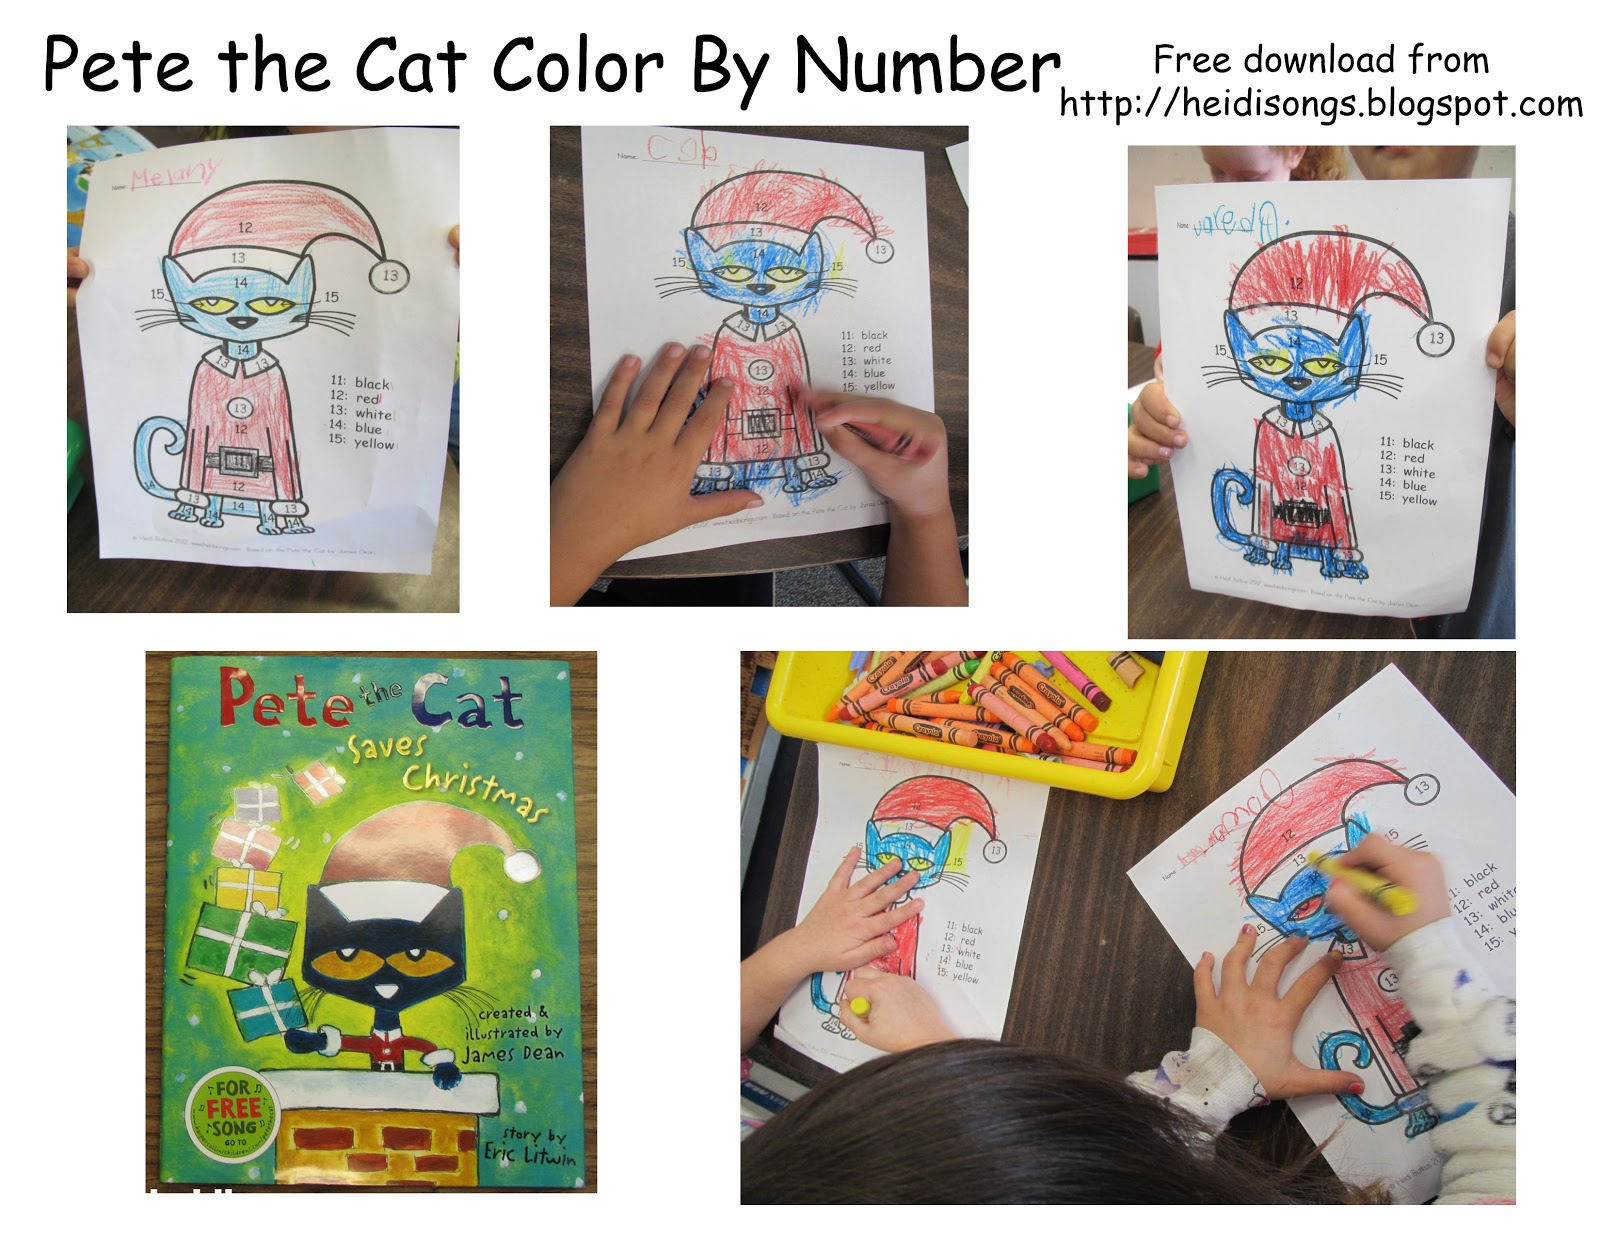 pete the cat saves christmas pdf